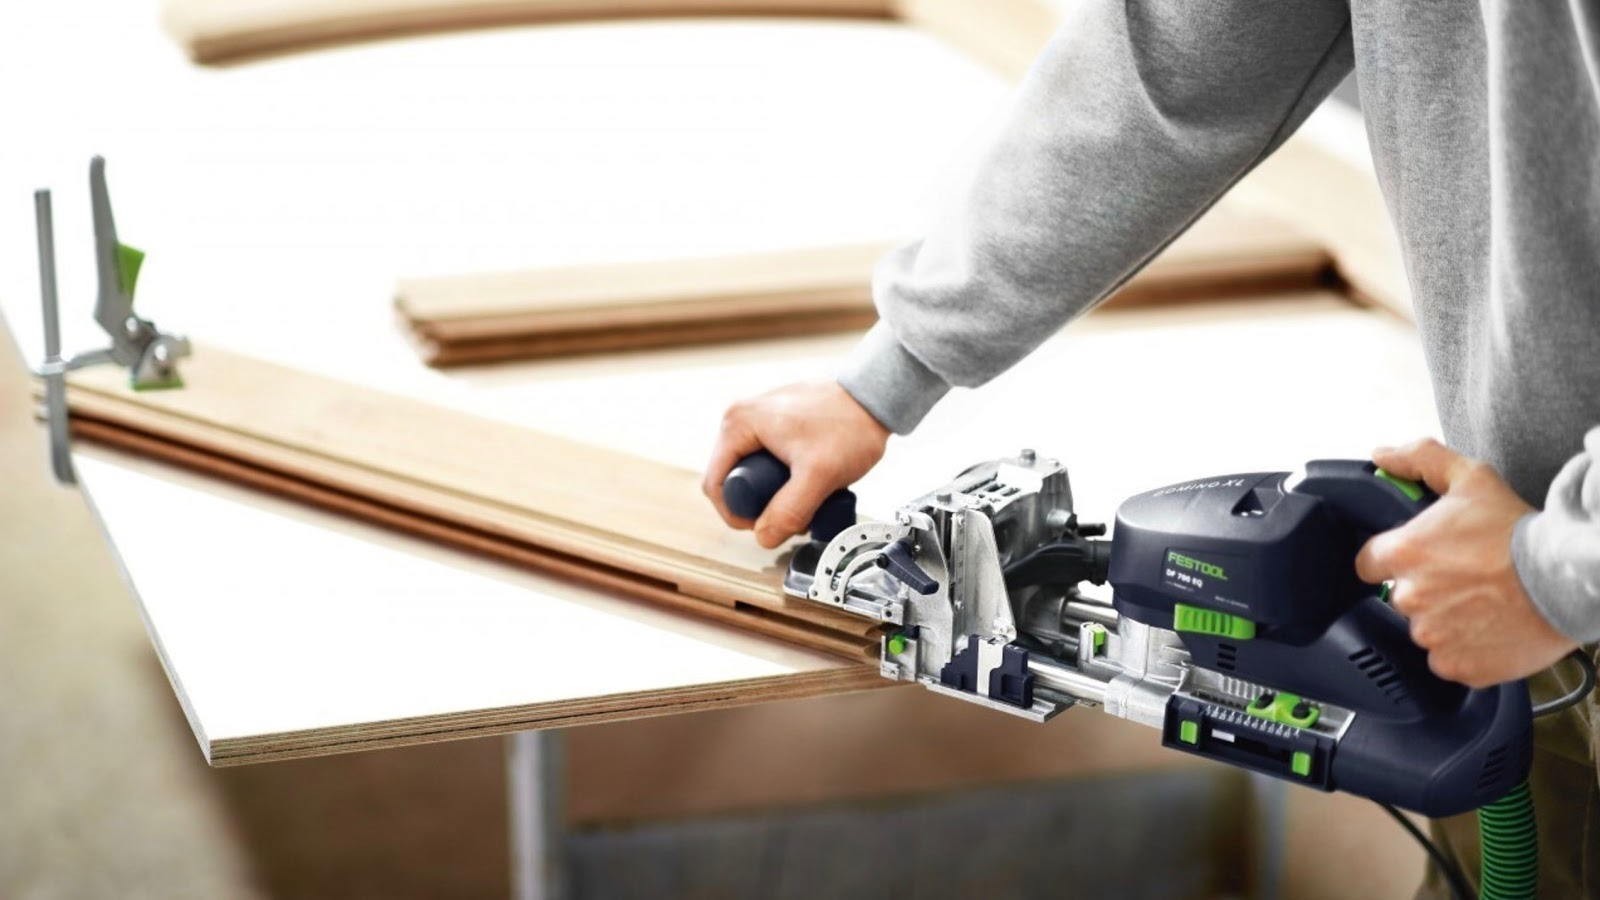 Woodworking Accessories To Take Your Festool Tools to the Next Level